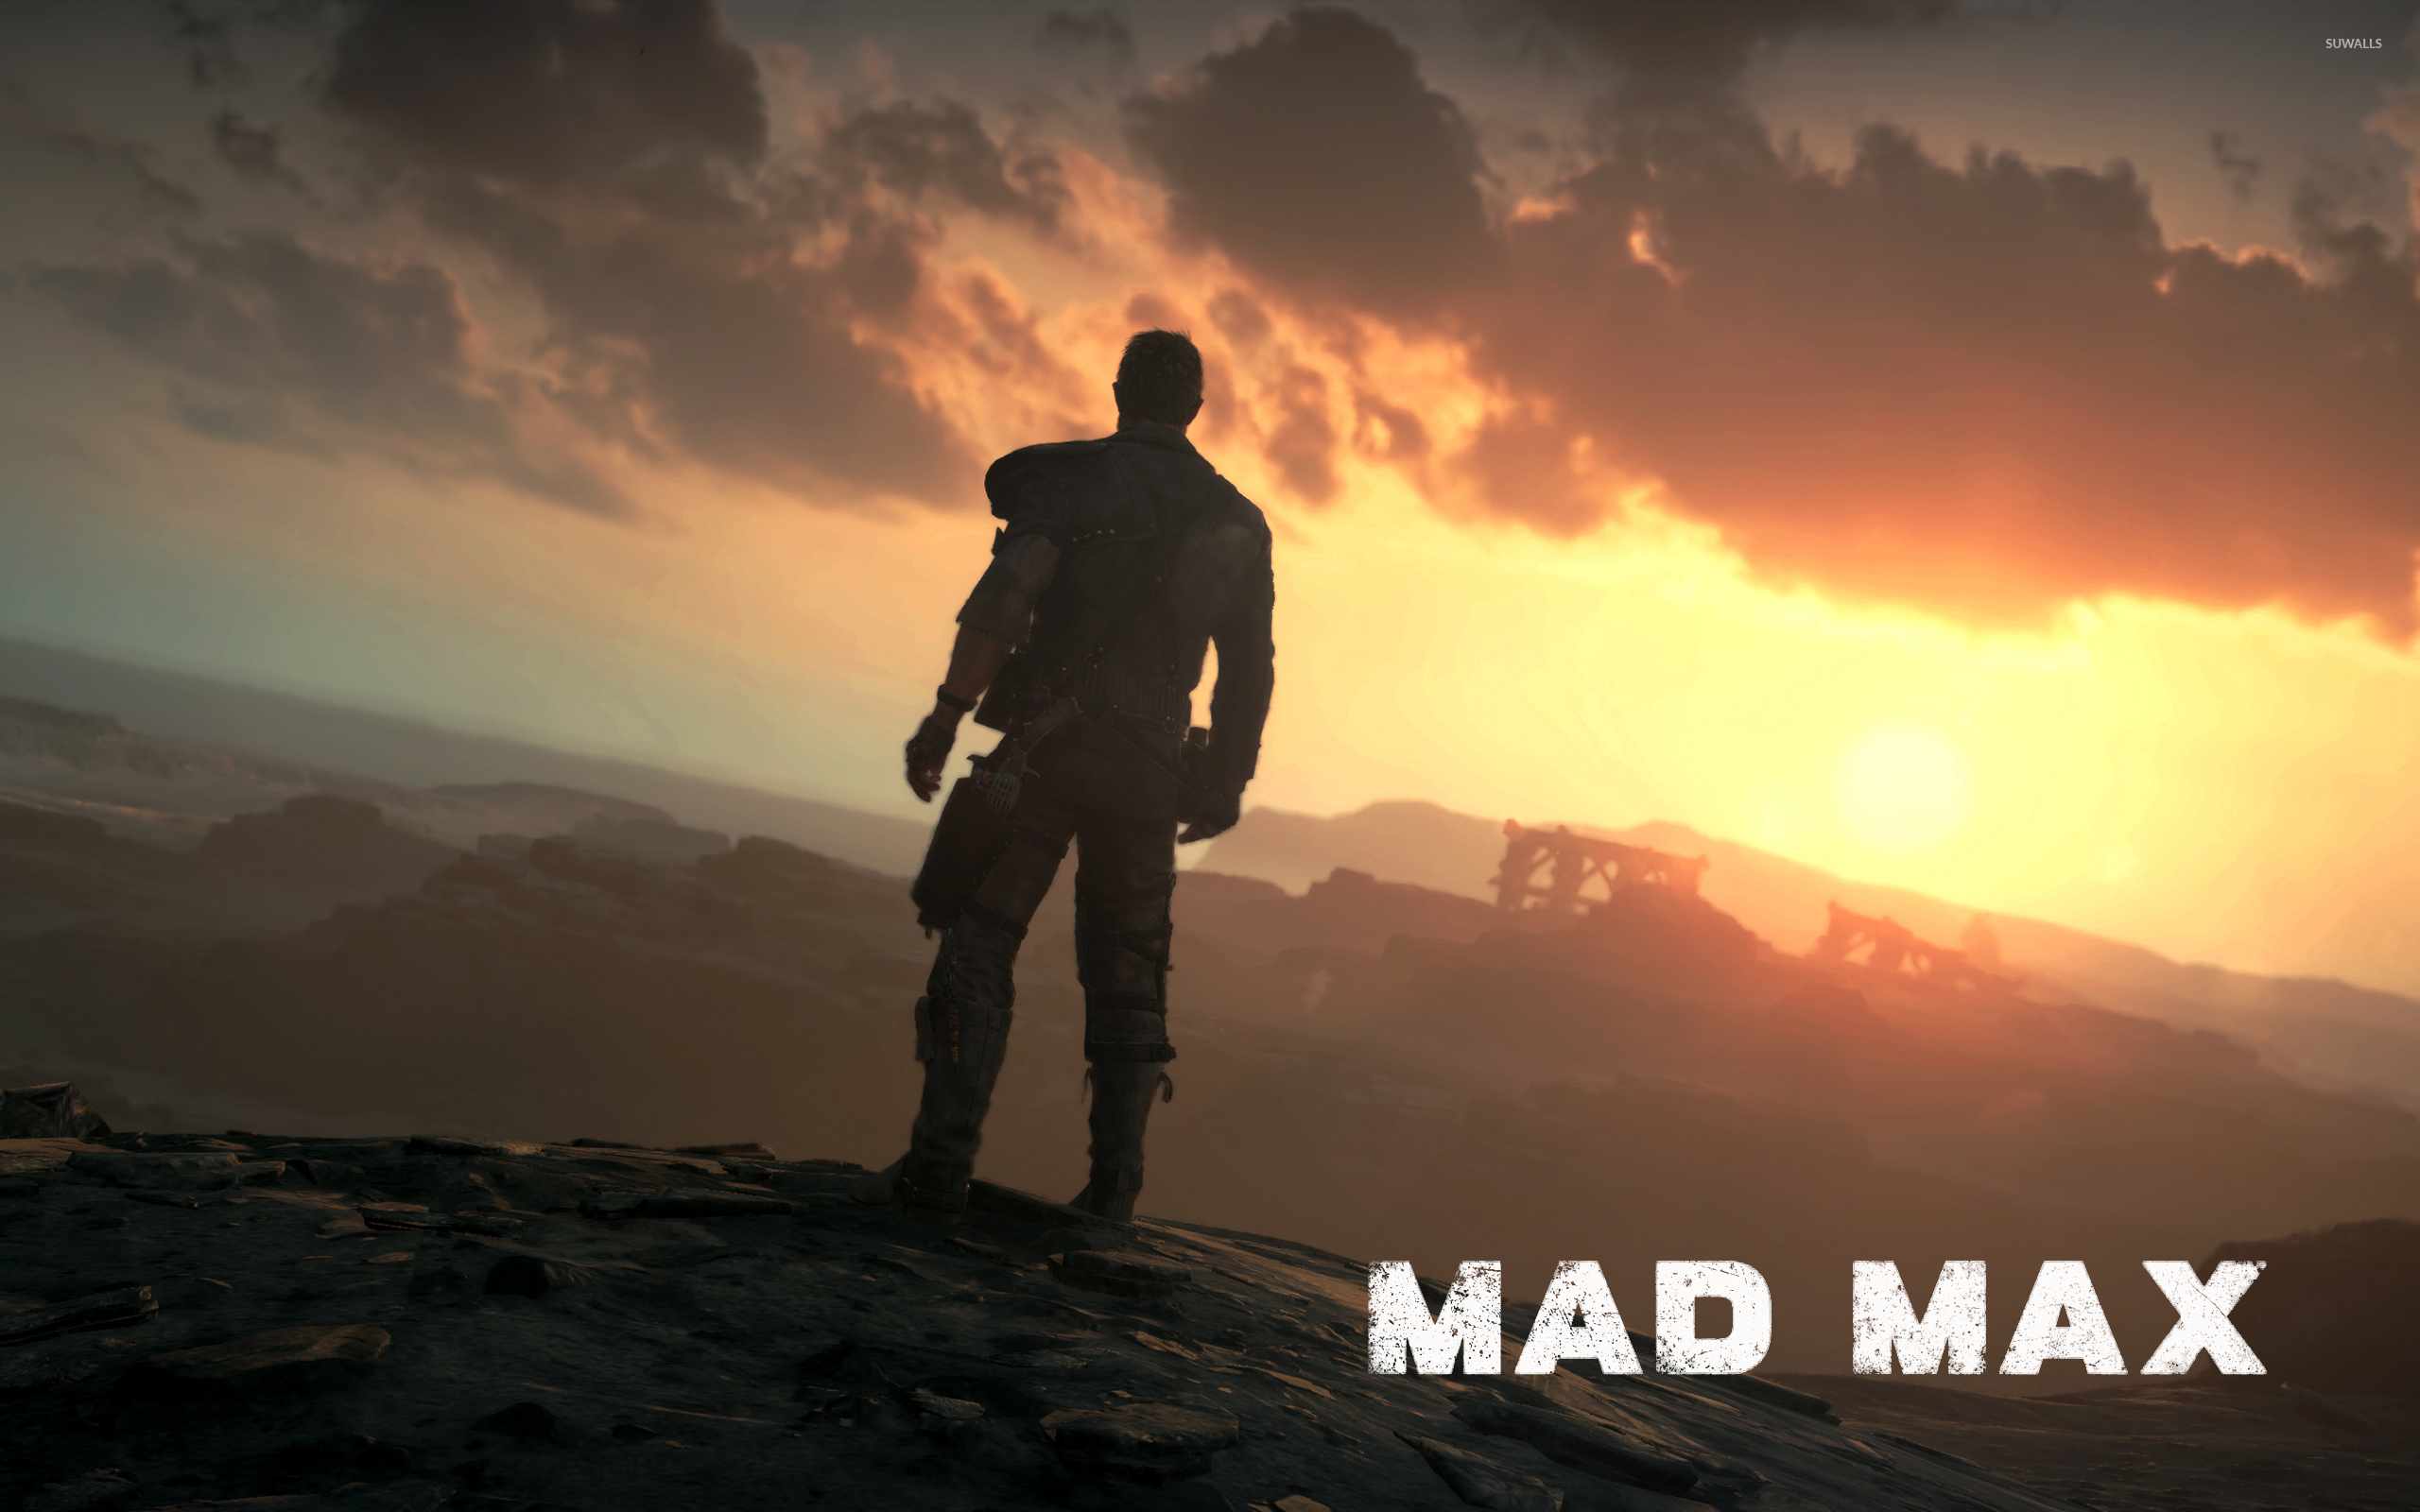 Max in the wasteland mad max wallpaper game wallpapers 49415 max in the wasteland mad max wallpaper voltagebd Image collections